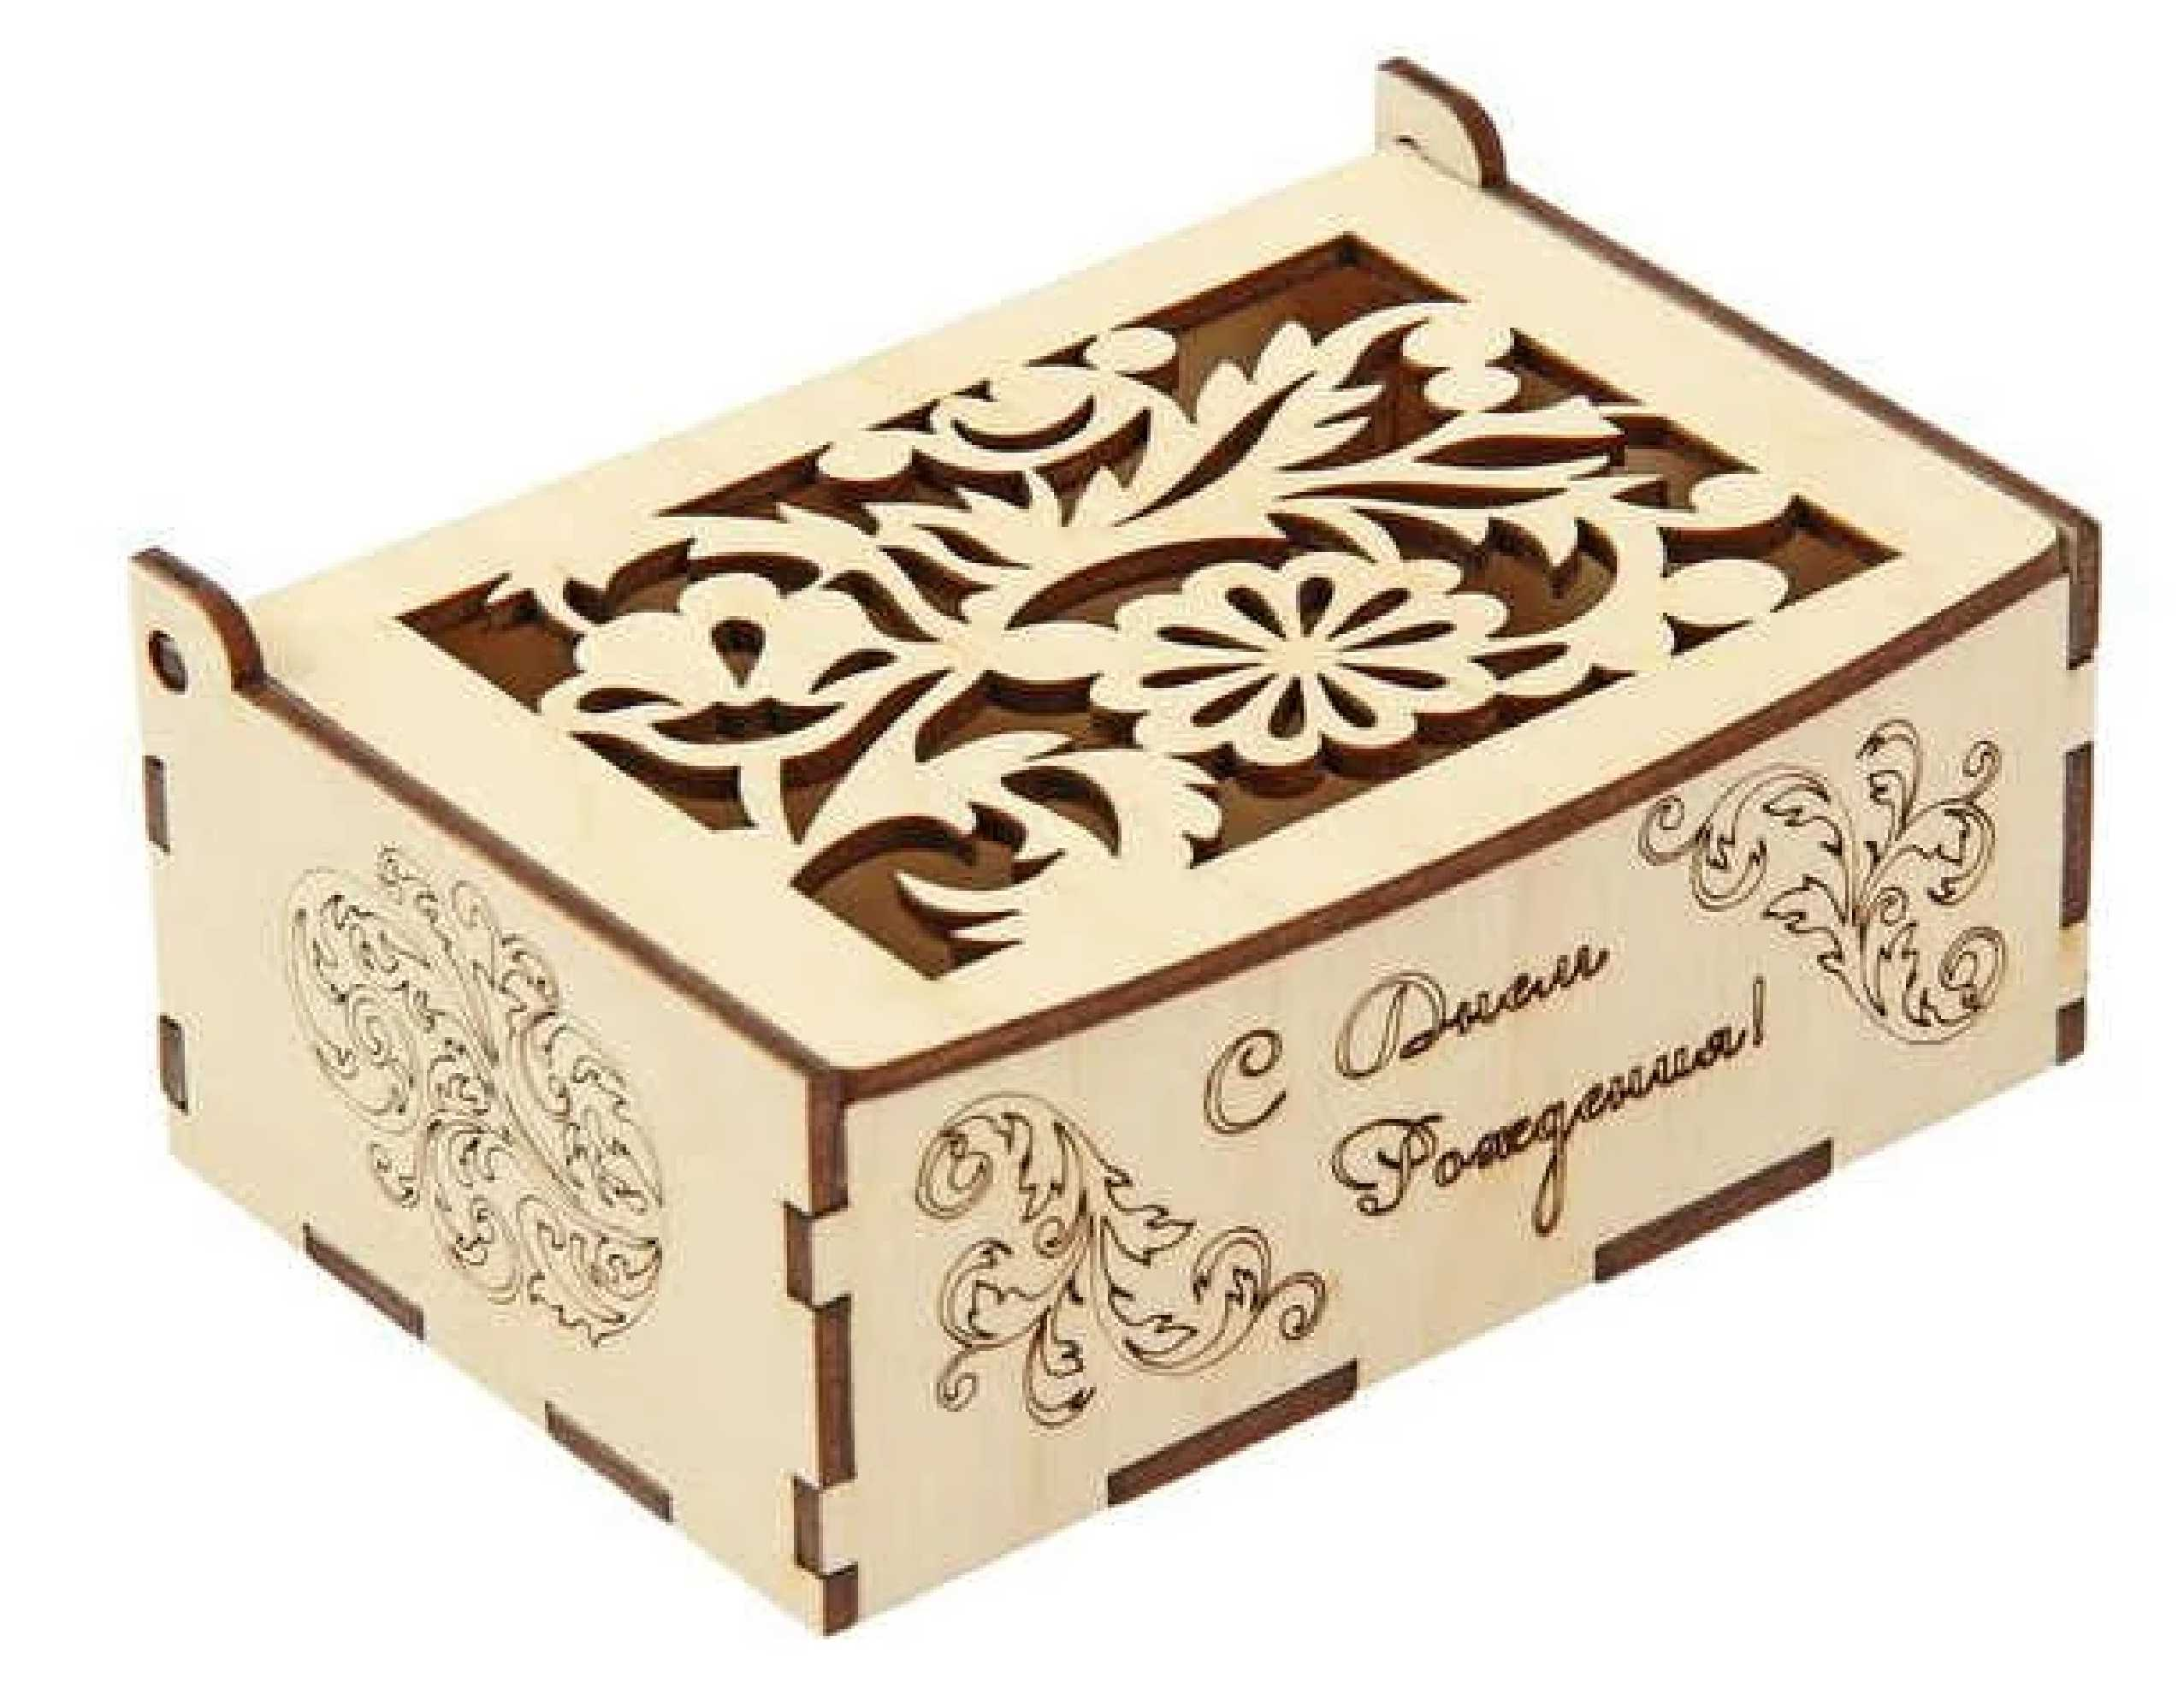 Decorative Box Laser Cut Free Vector Cdr Download 3axis Co